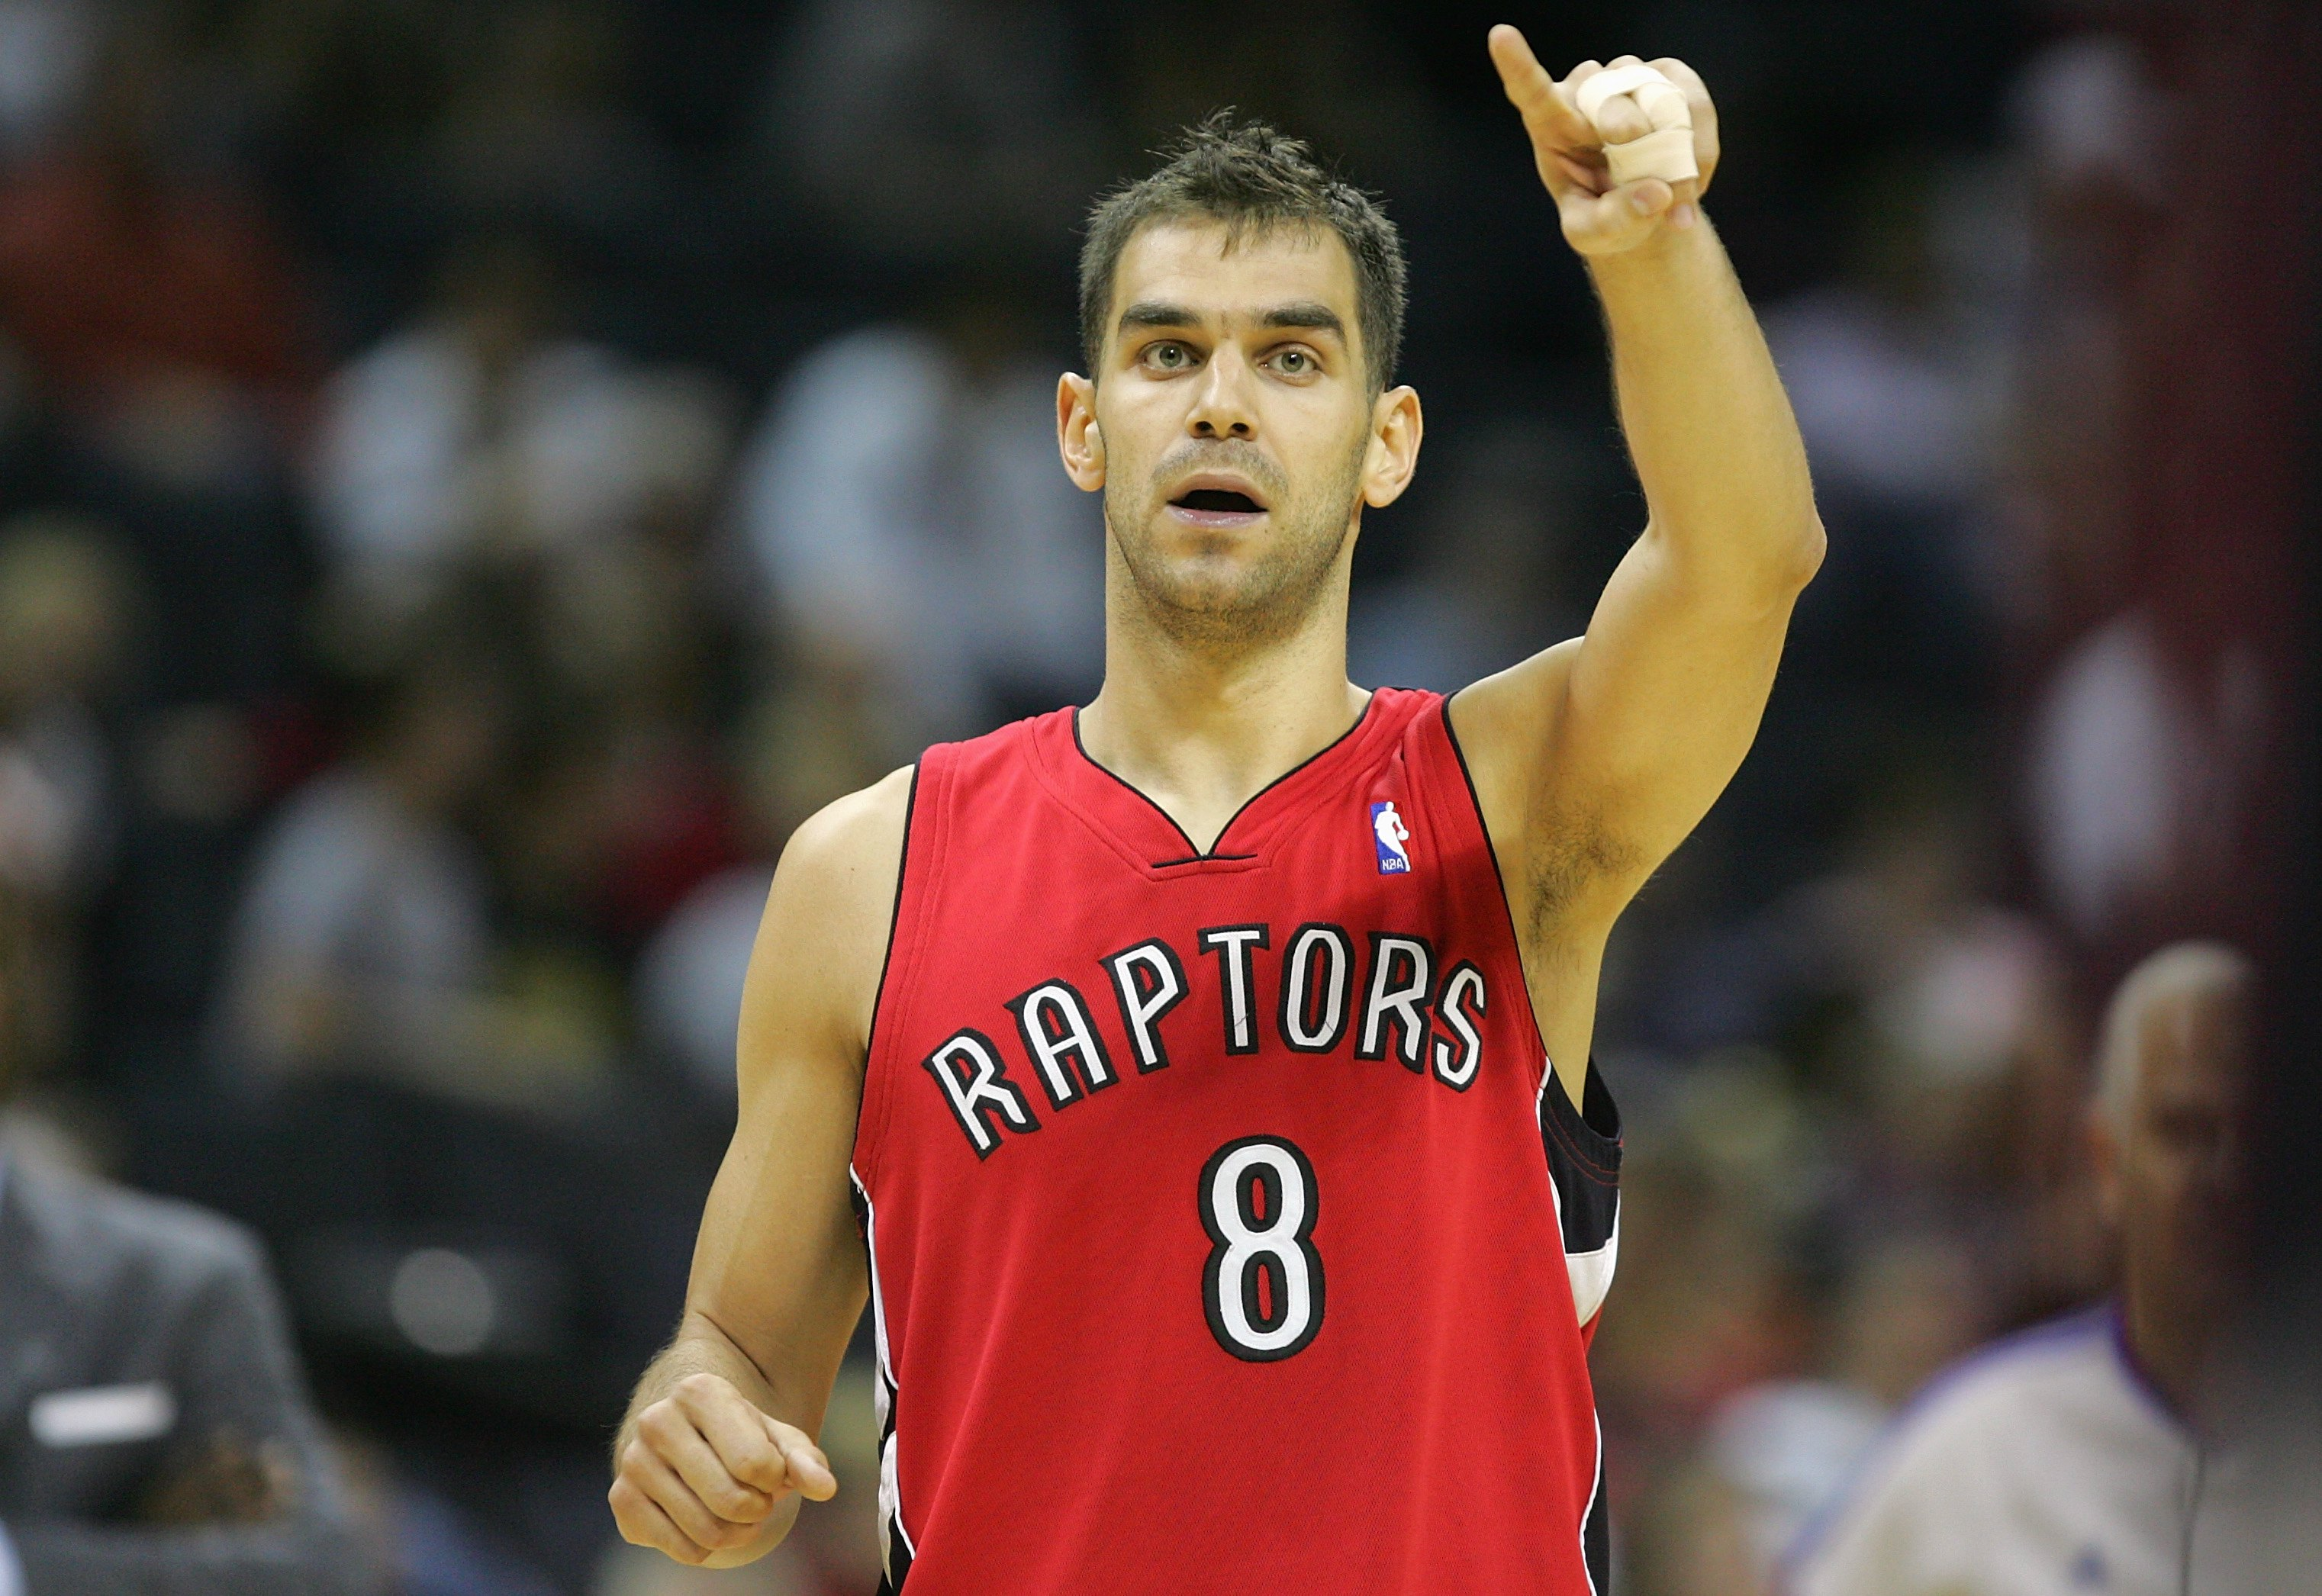 CHARLOTTE, NC - MARCH 2:  Jose Calderon #8 of the Toronto Raptors gestures during the game against the Charlotte Bobcats at Bobcats Arena on March 2, 2008 in Charlotte, North Carolina. The Bobcats won 110-98.  NOTE TO USER: User expressly acknowledges and